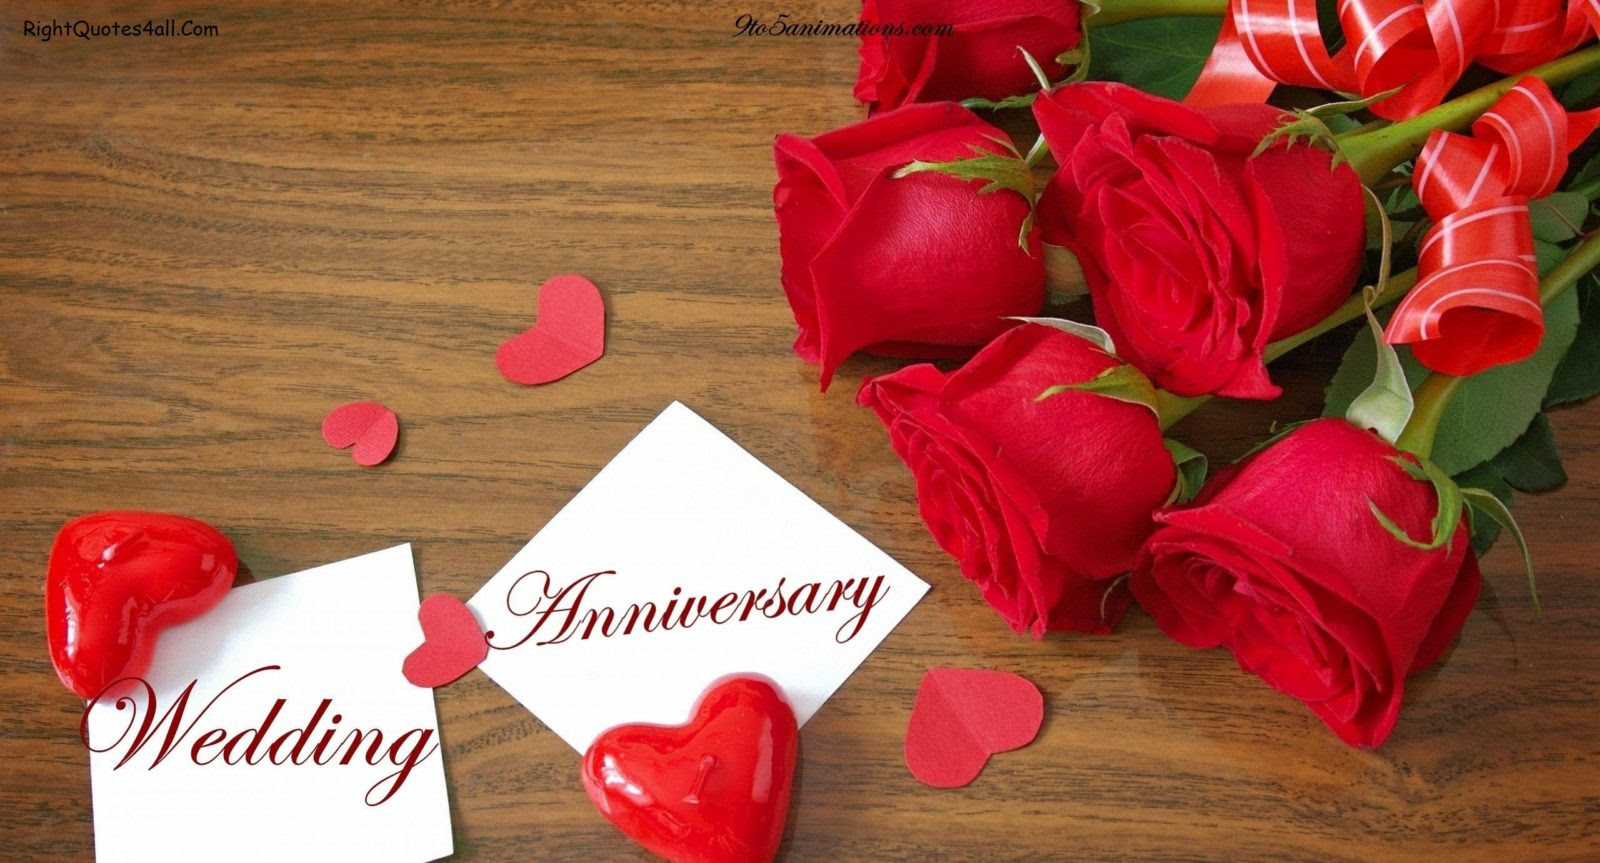 Sister Wedding Anniversary Quotes